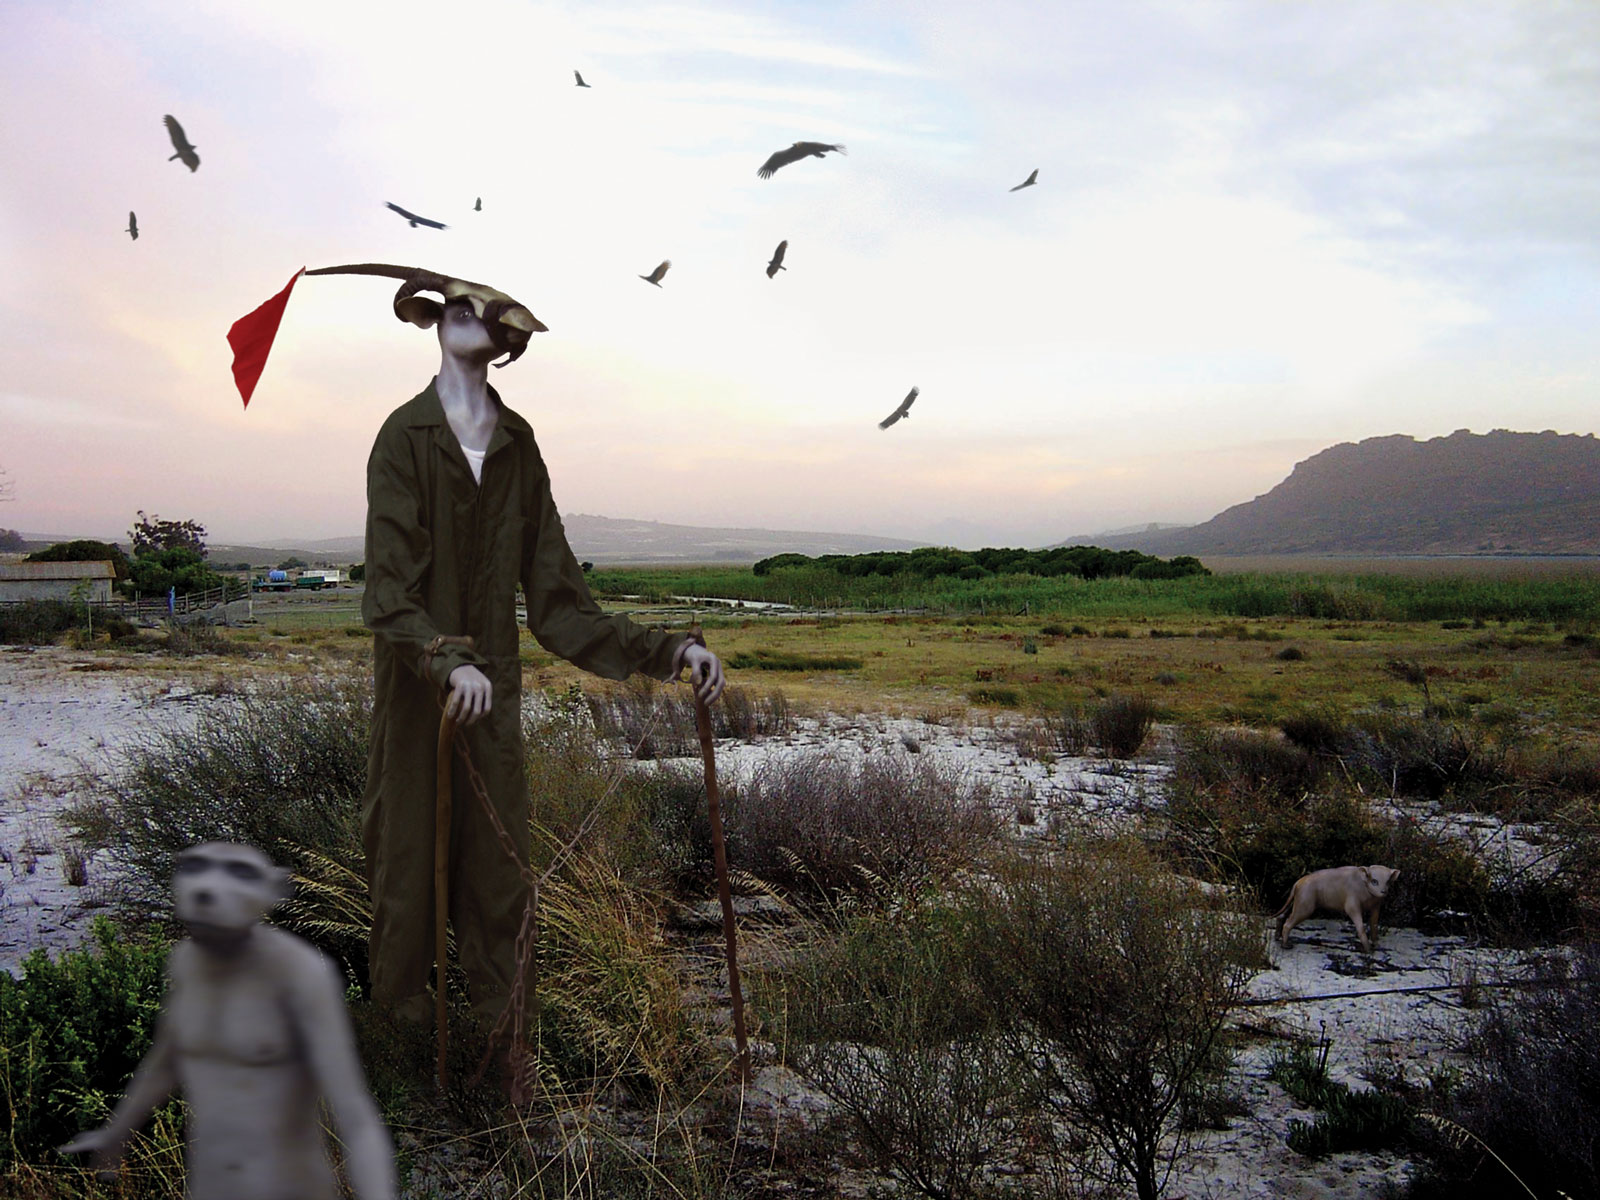 <i>Harbinger</i> in correctional uniform, lost marsh (2007). Photomontage including vultures, sculpture <i>Harbinger in correctional uniform</i>, and location of Verlorenvlei (lost marsh) in the Western Cape, South Africa. Fiberglass; oil paint; synthetic clay; wood walking sticks; prisoner's uniform from pre-democracy South Africa; shackles loaned from Pollsmoor Maximum Security Prison in South Africa. Image from a pigment print on cotton paper, 30 × 40 cm